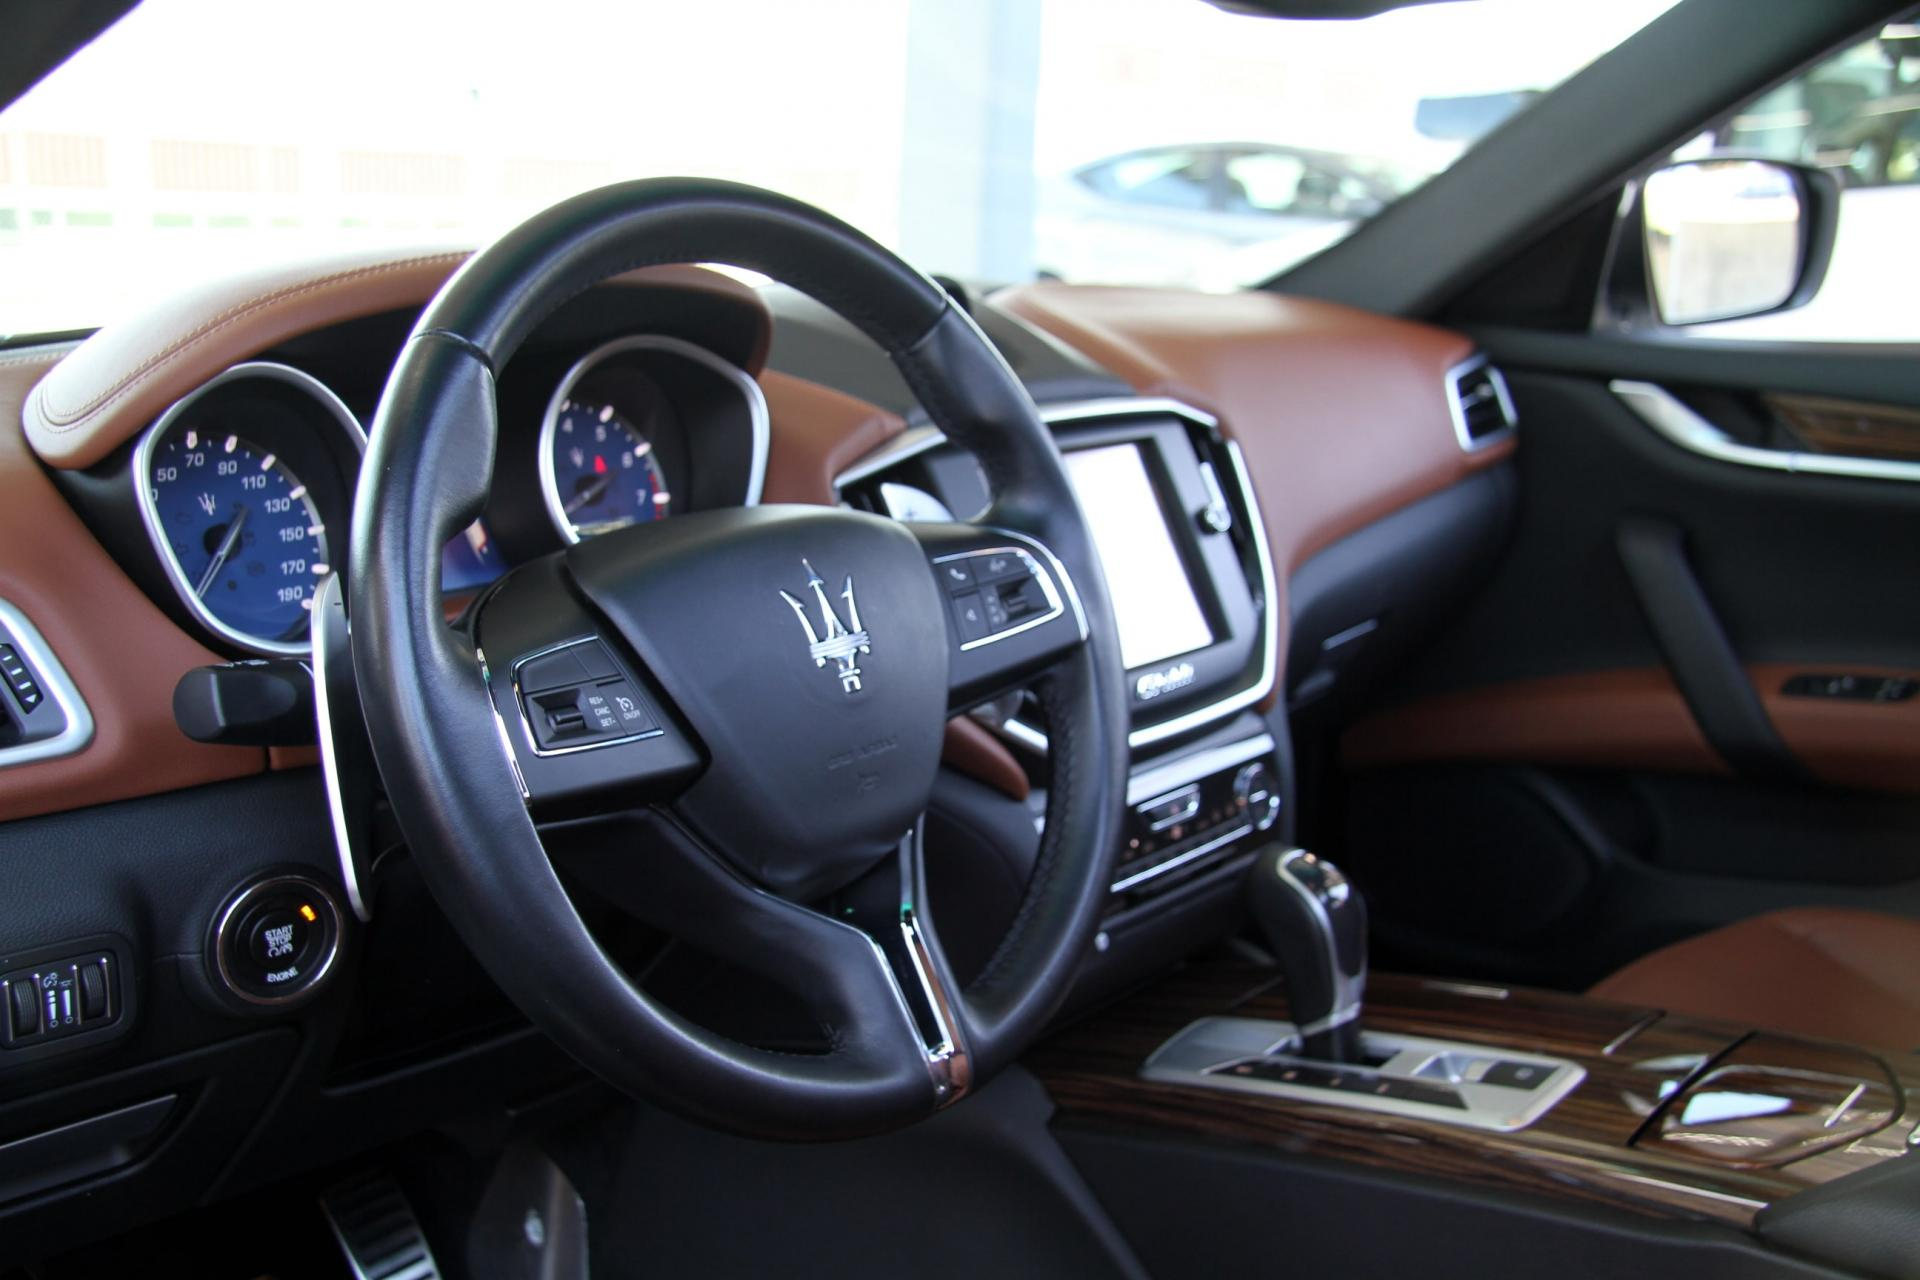 2015 Maserati Ghibli S Q4 Stock 5995 For Sale Near